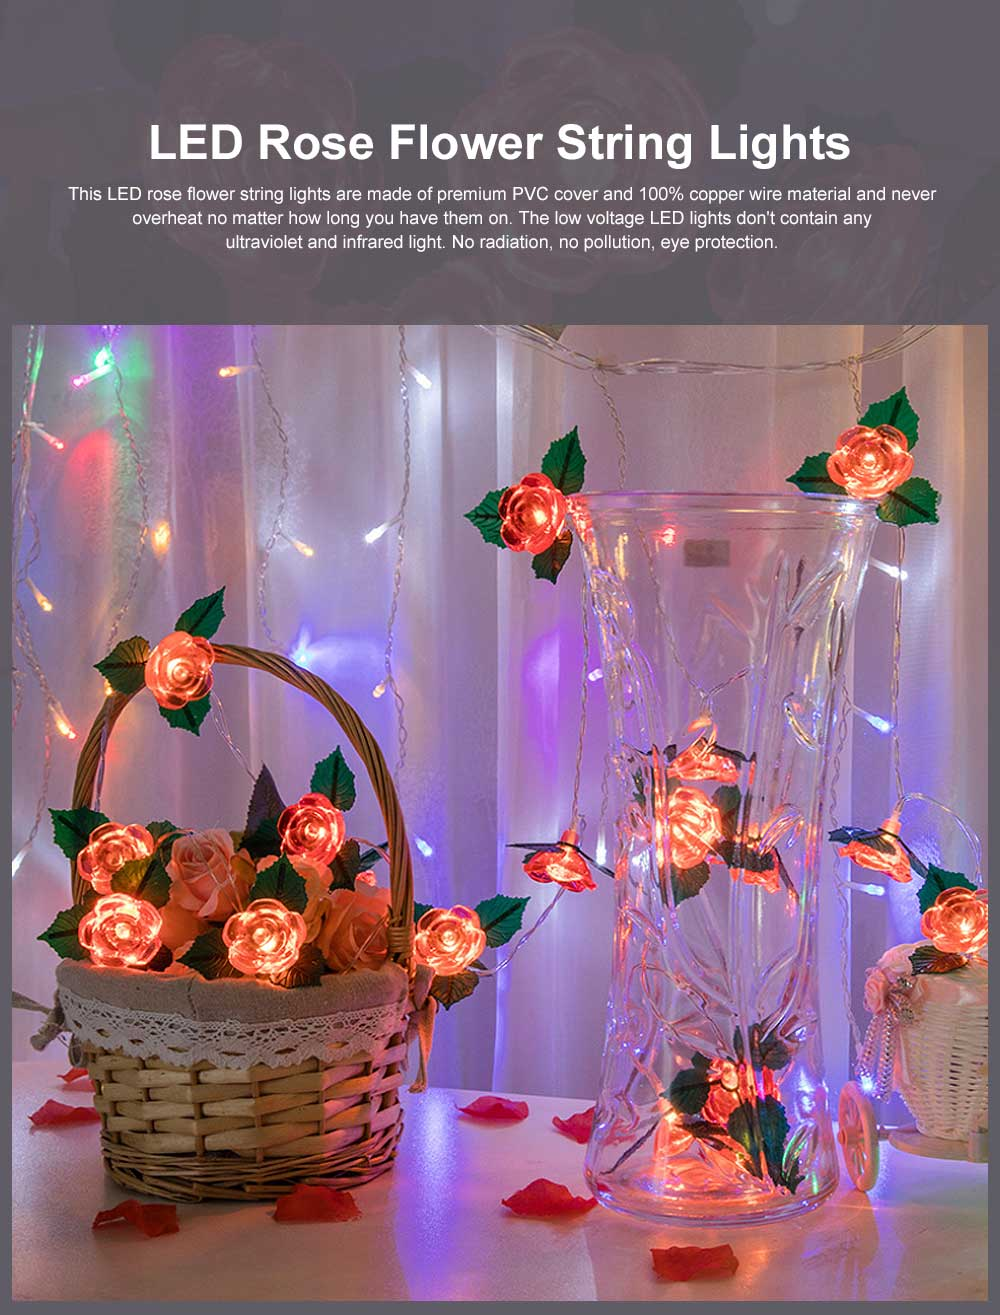 LED Rose Flower String Lights Copper Wire Battery Operated Lights Romantic Rose Lamp for Wedding Home Party Birthday Festival Indoor Outdoor Decorations 0